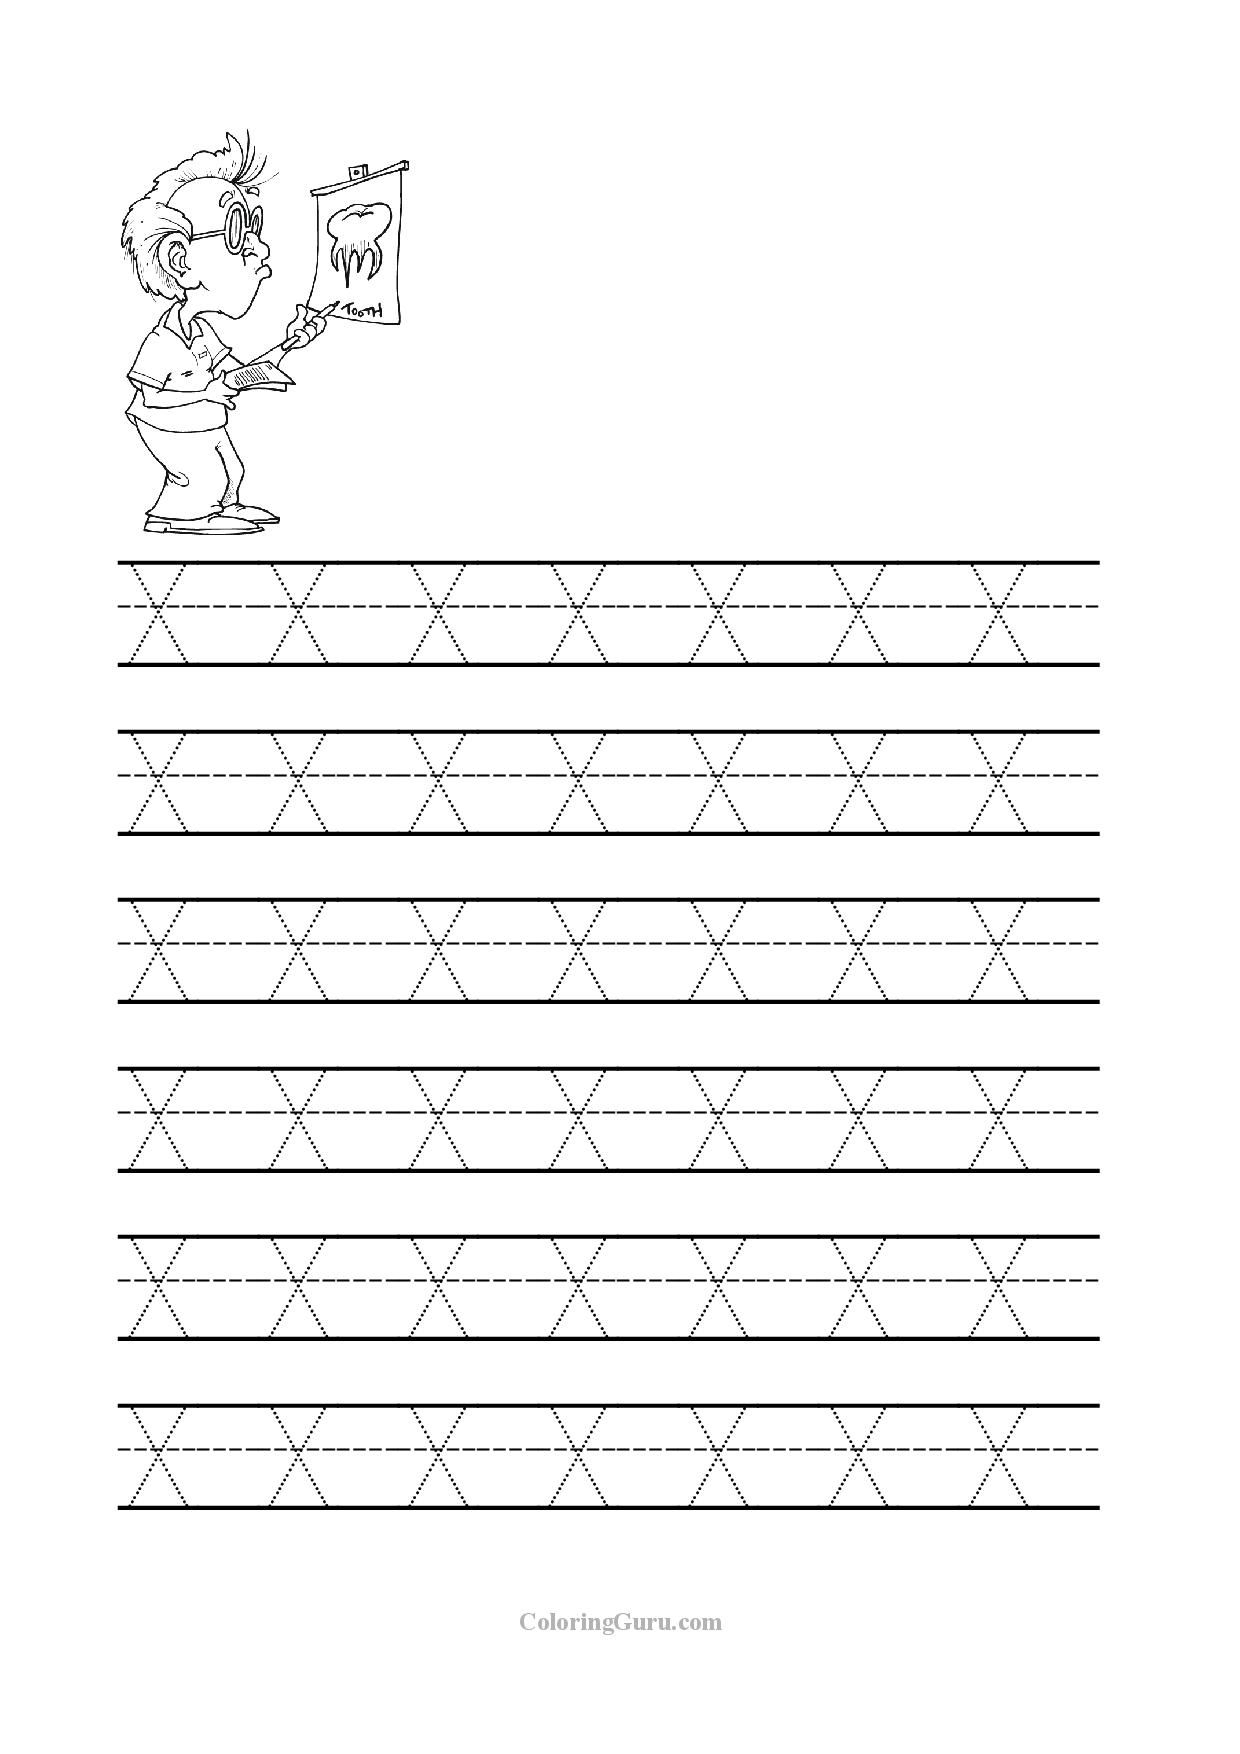 Free Printable Tracing Letter X Worksheets For Preschool intended for Tracing Letter X Worksheets